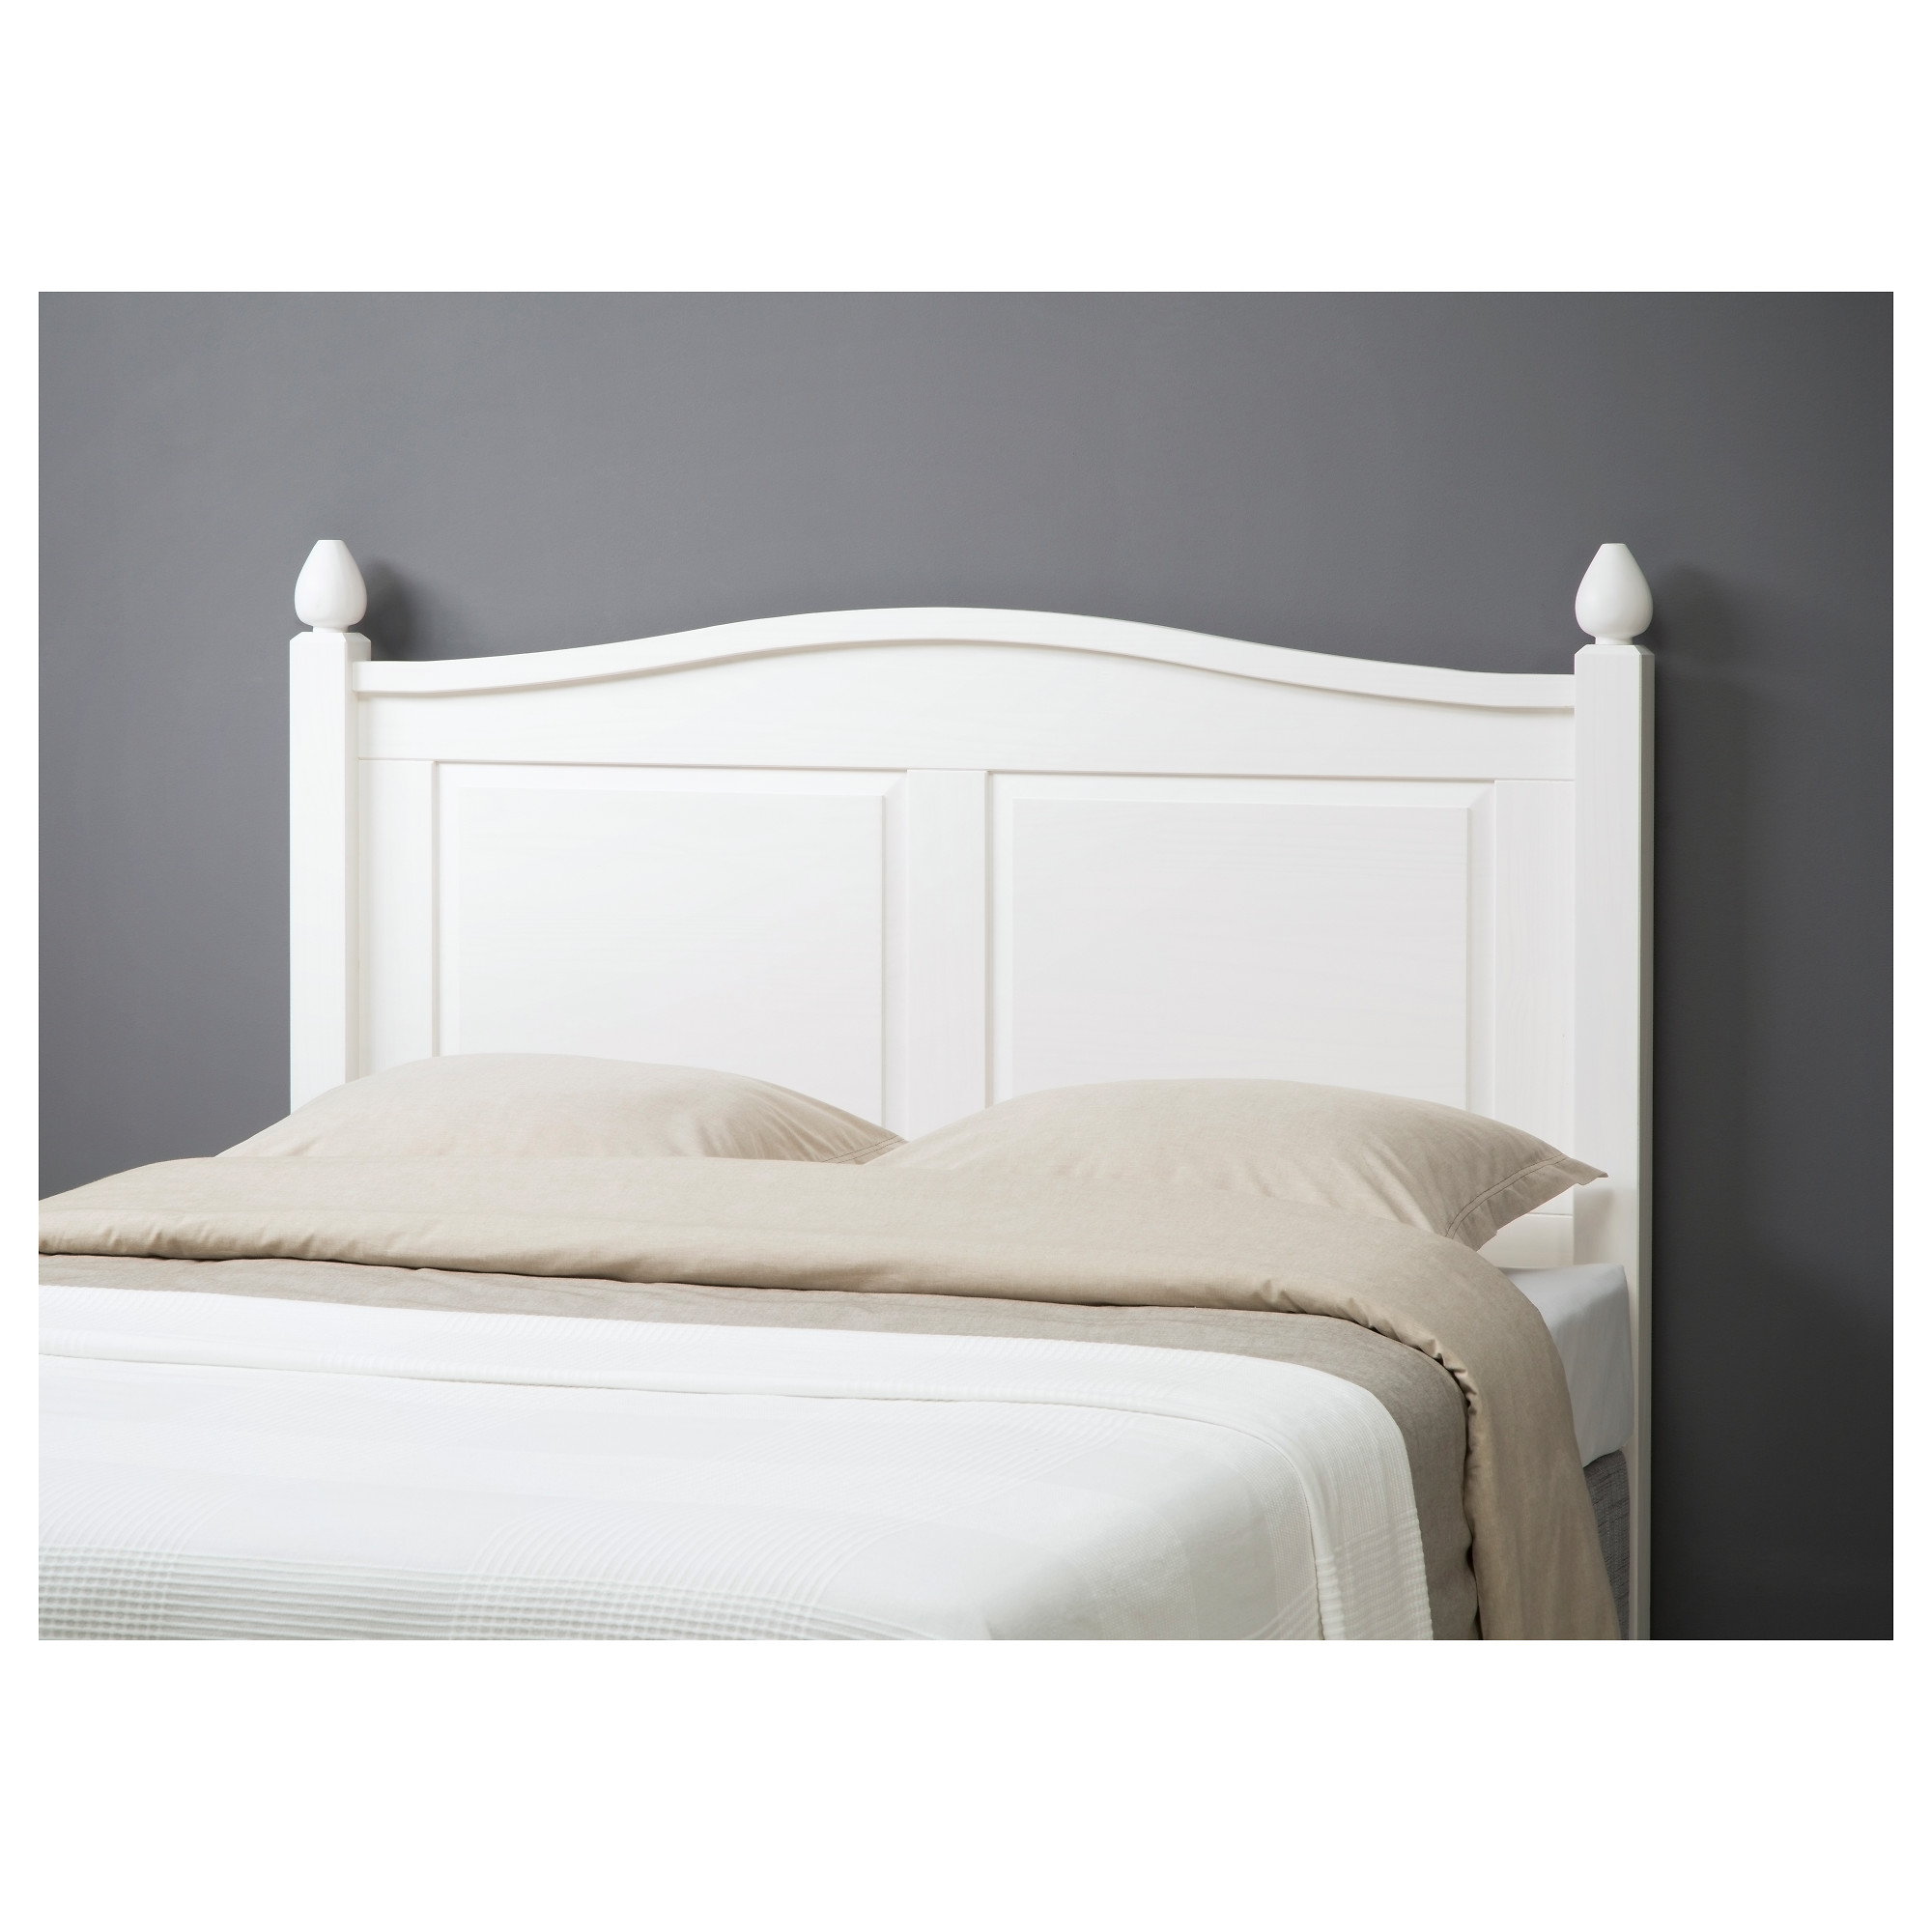 Wall mounted king size headboard good bedwall mounted Wall mounted queen headboard